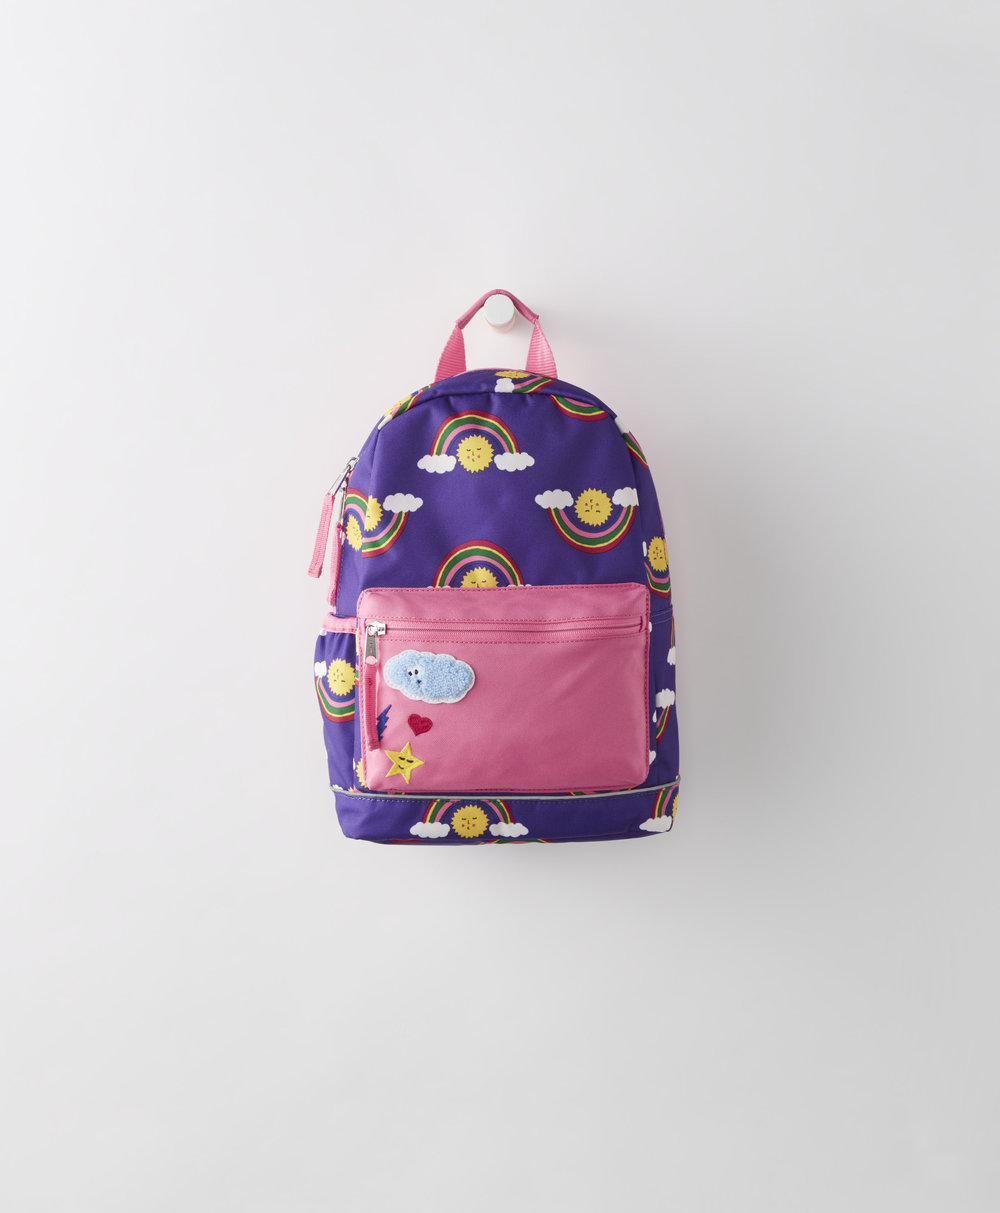 kids-backpacks-_0001_Layer 2.jpg